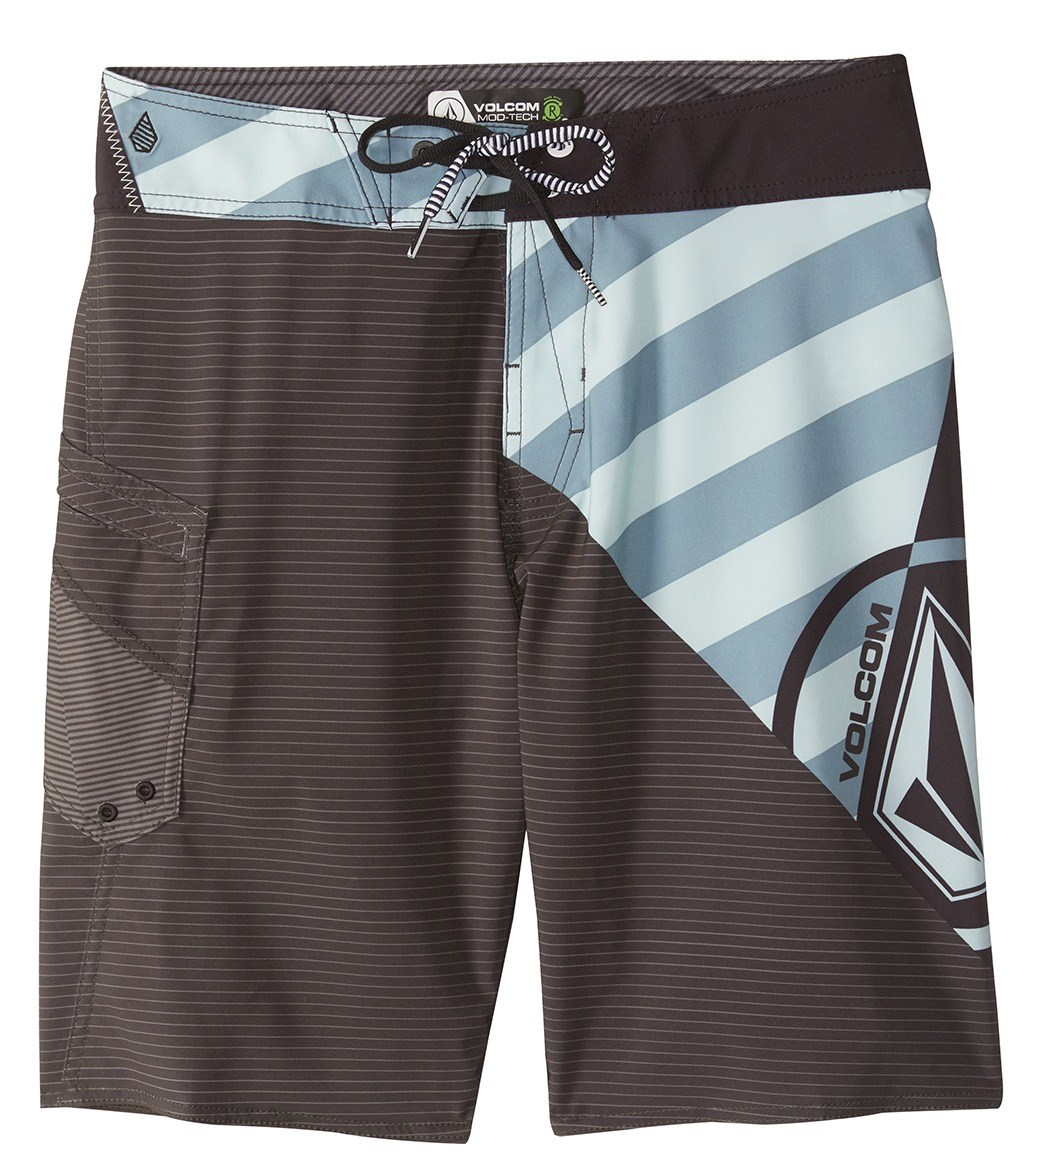 Volcom Men's Liberate Lido Mod Boardshort at YogaOutlet.com - Free Shipping